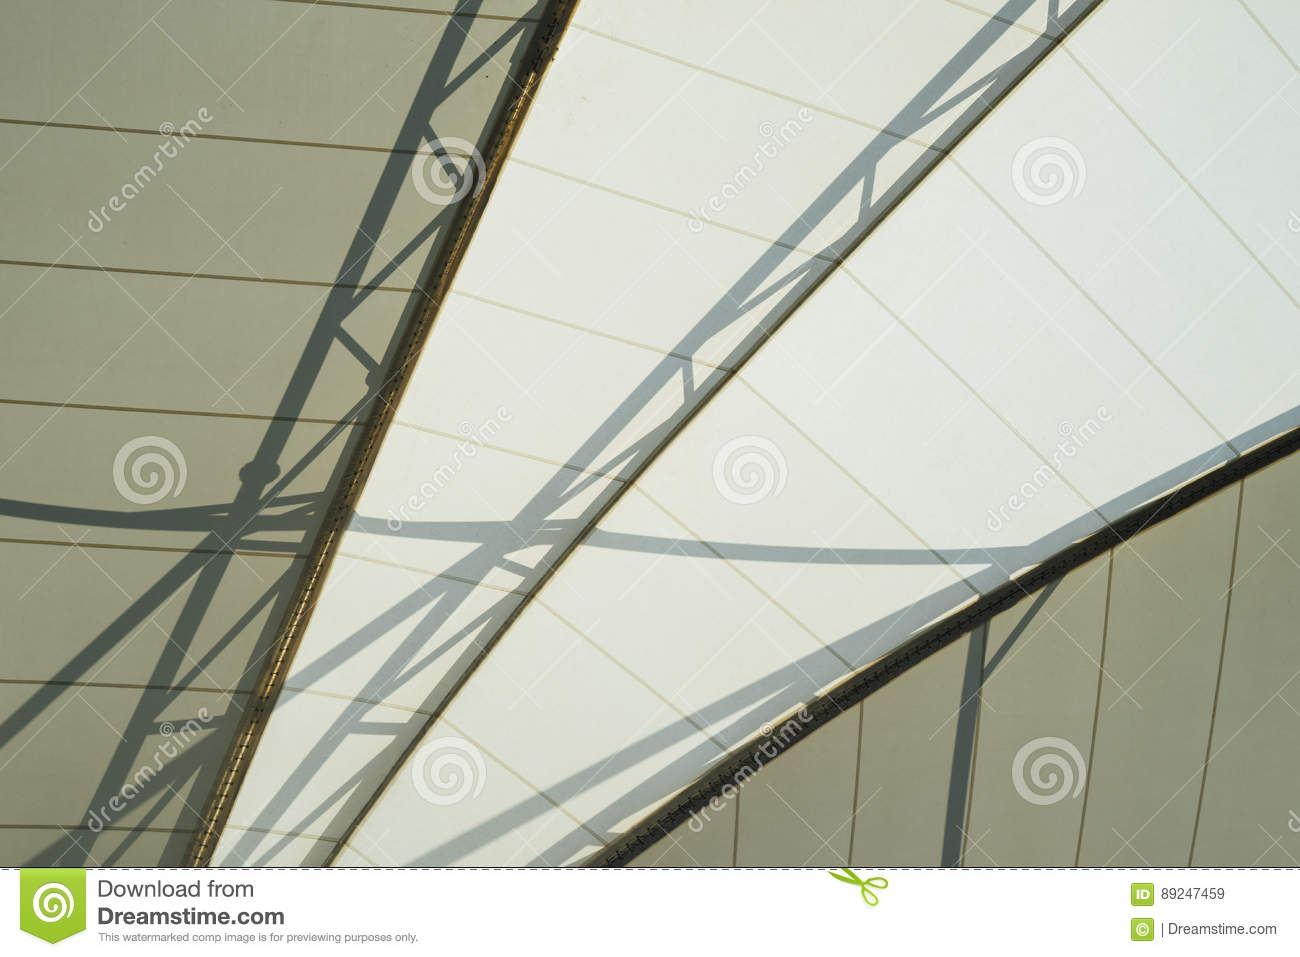 Framing in the dome roof stock image. Image of interior - 89247459